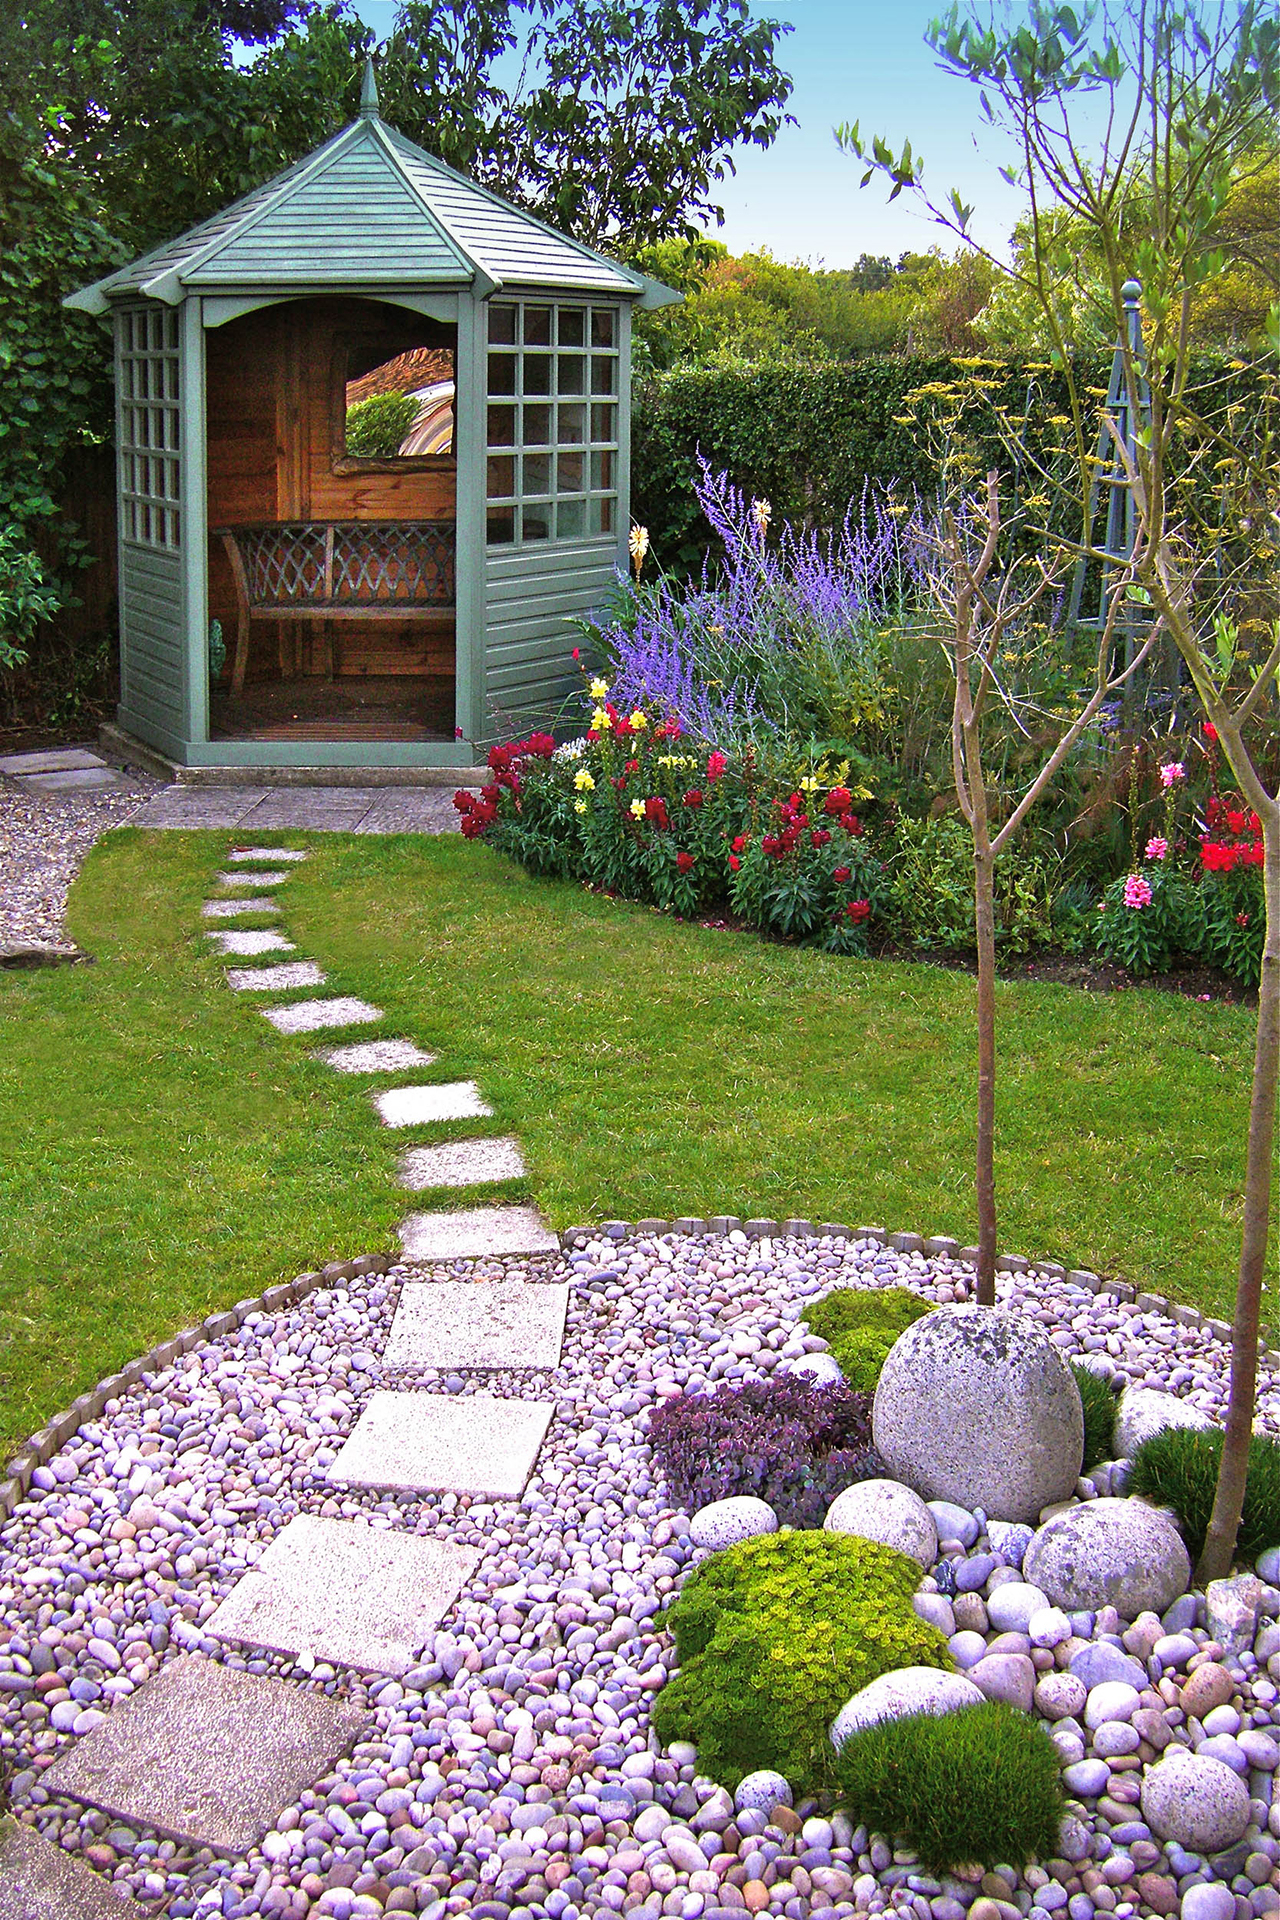 50 Best Backyard Landscaping Ideas And Designs In 2019 within Pictures Of Backyard Landscaping